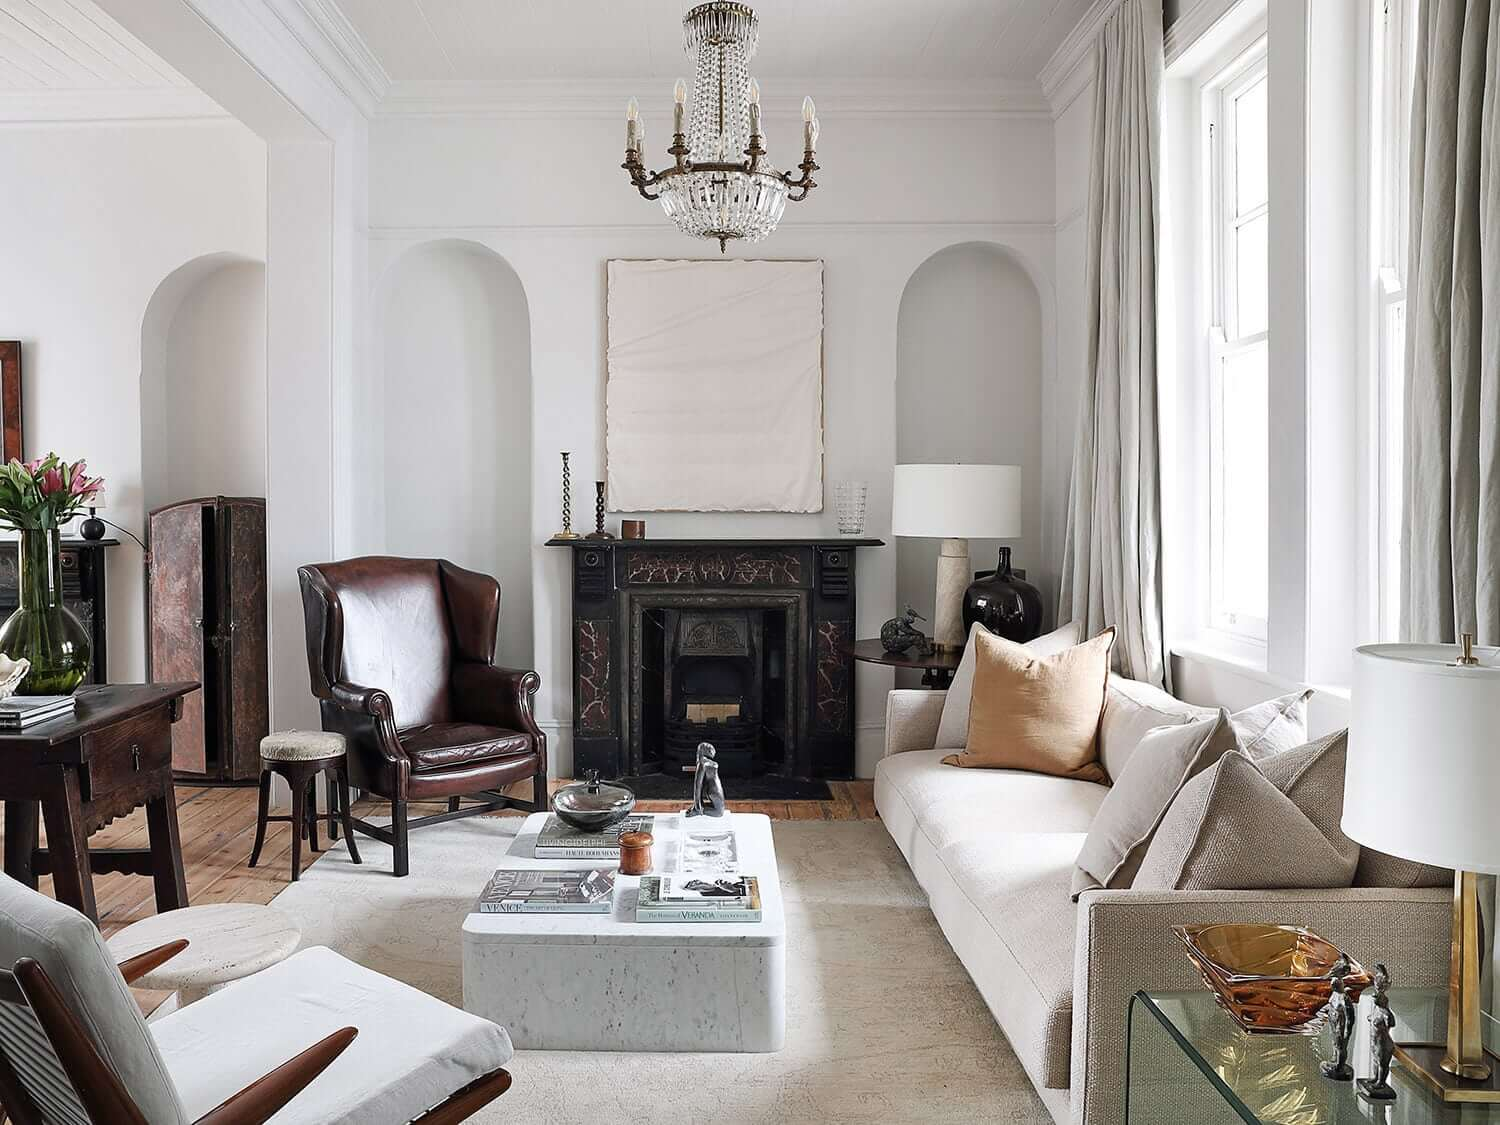 Sophisticated living room with fireplace and carpet over the wooden floor, photograph by Elsa Young